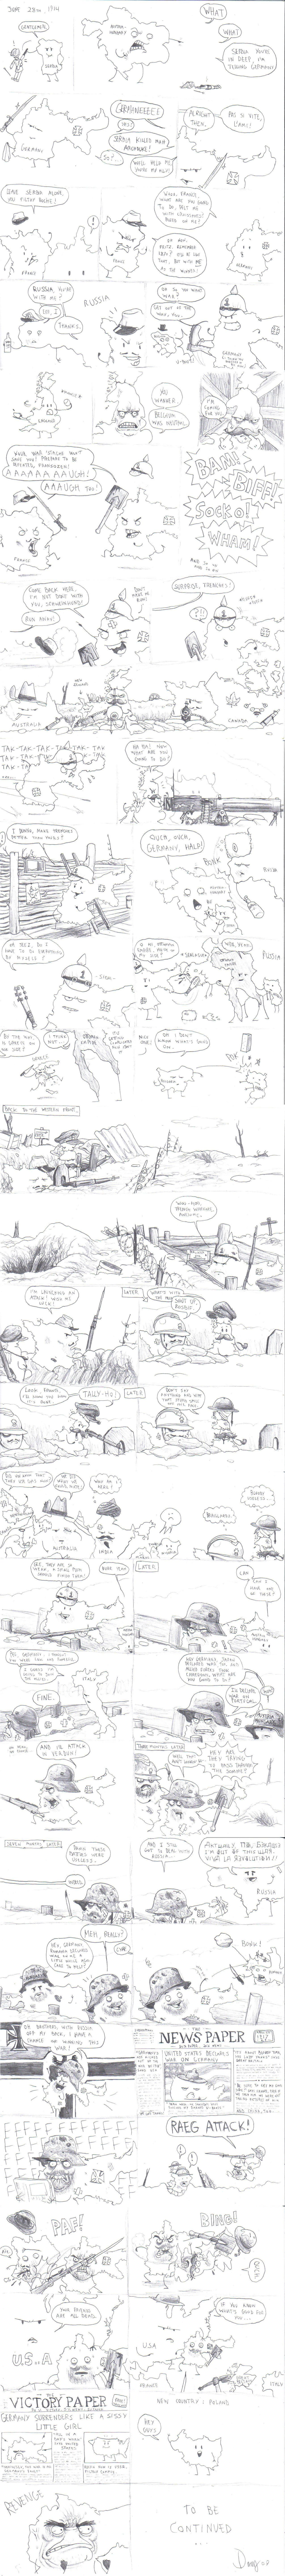 world war one simple version by angusmcleod